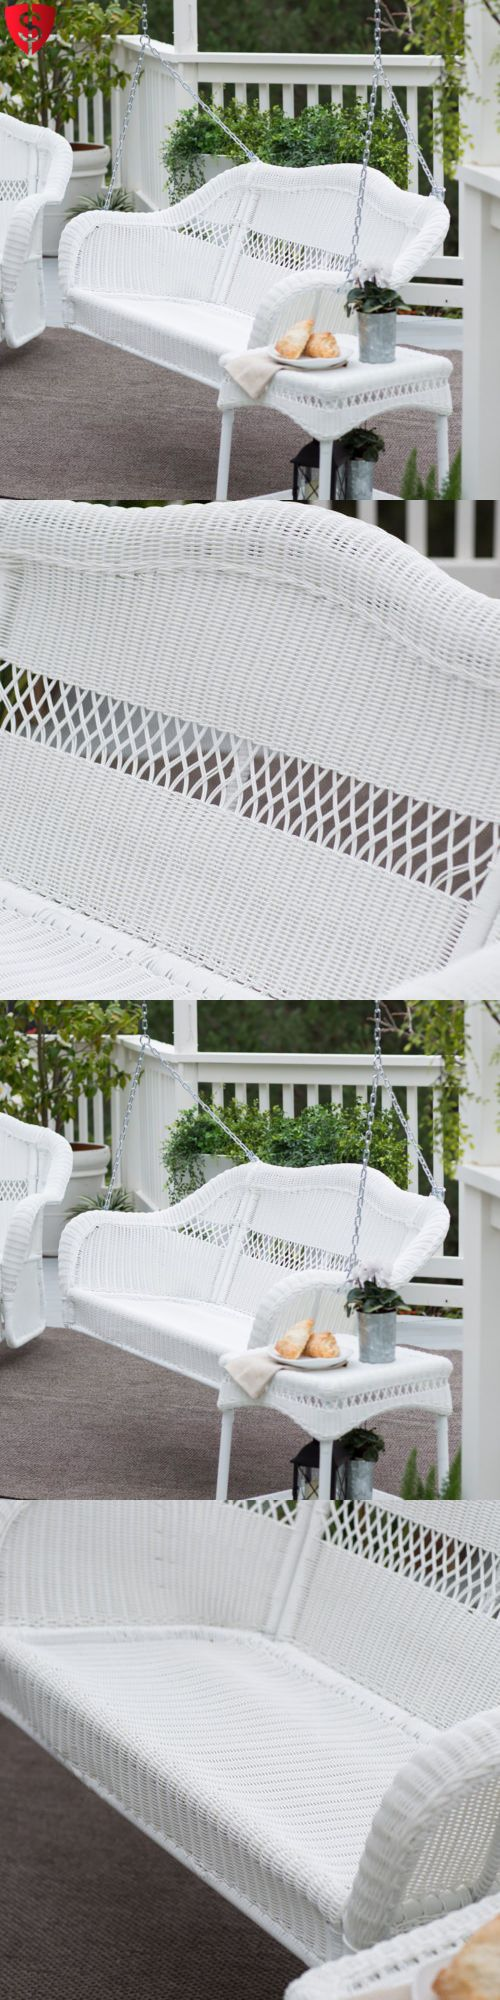 How to make seat cushions for dining chairs moreover white resin - Swings 79700 Wicker Porch Swing Resin Patio Hanging Furniture Seat Bench Outdoor 2 Person